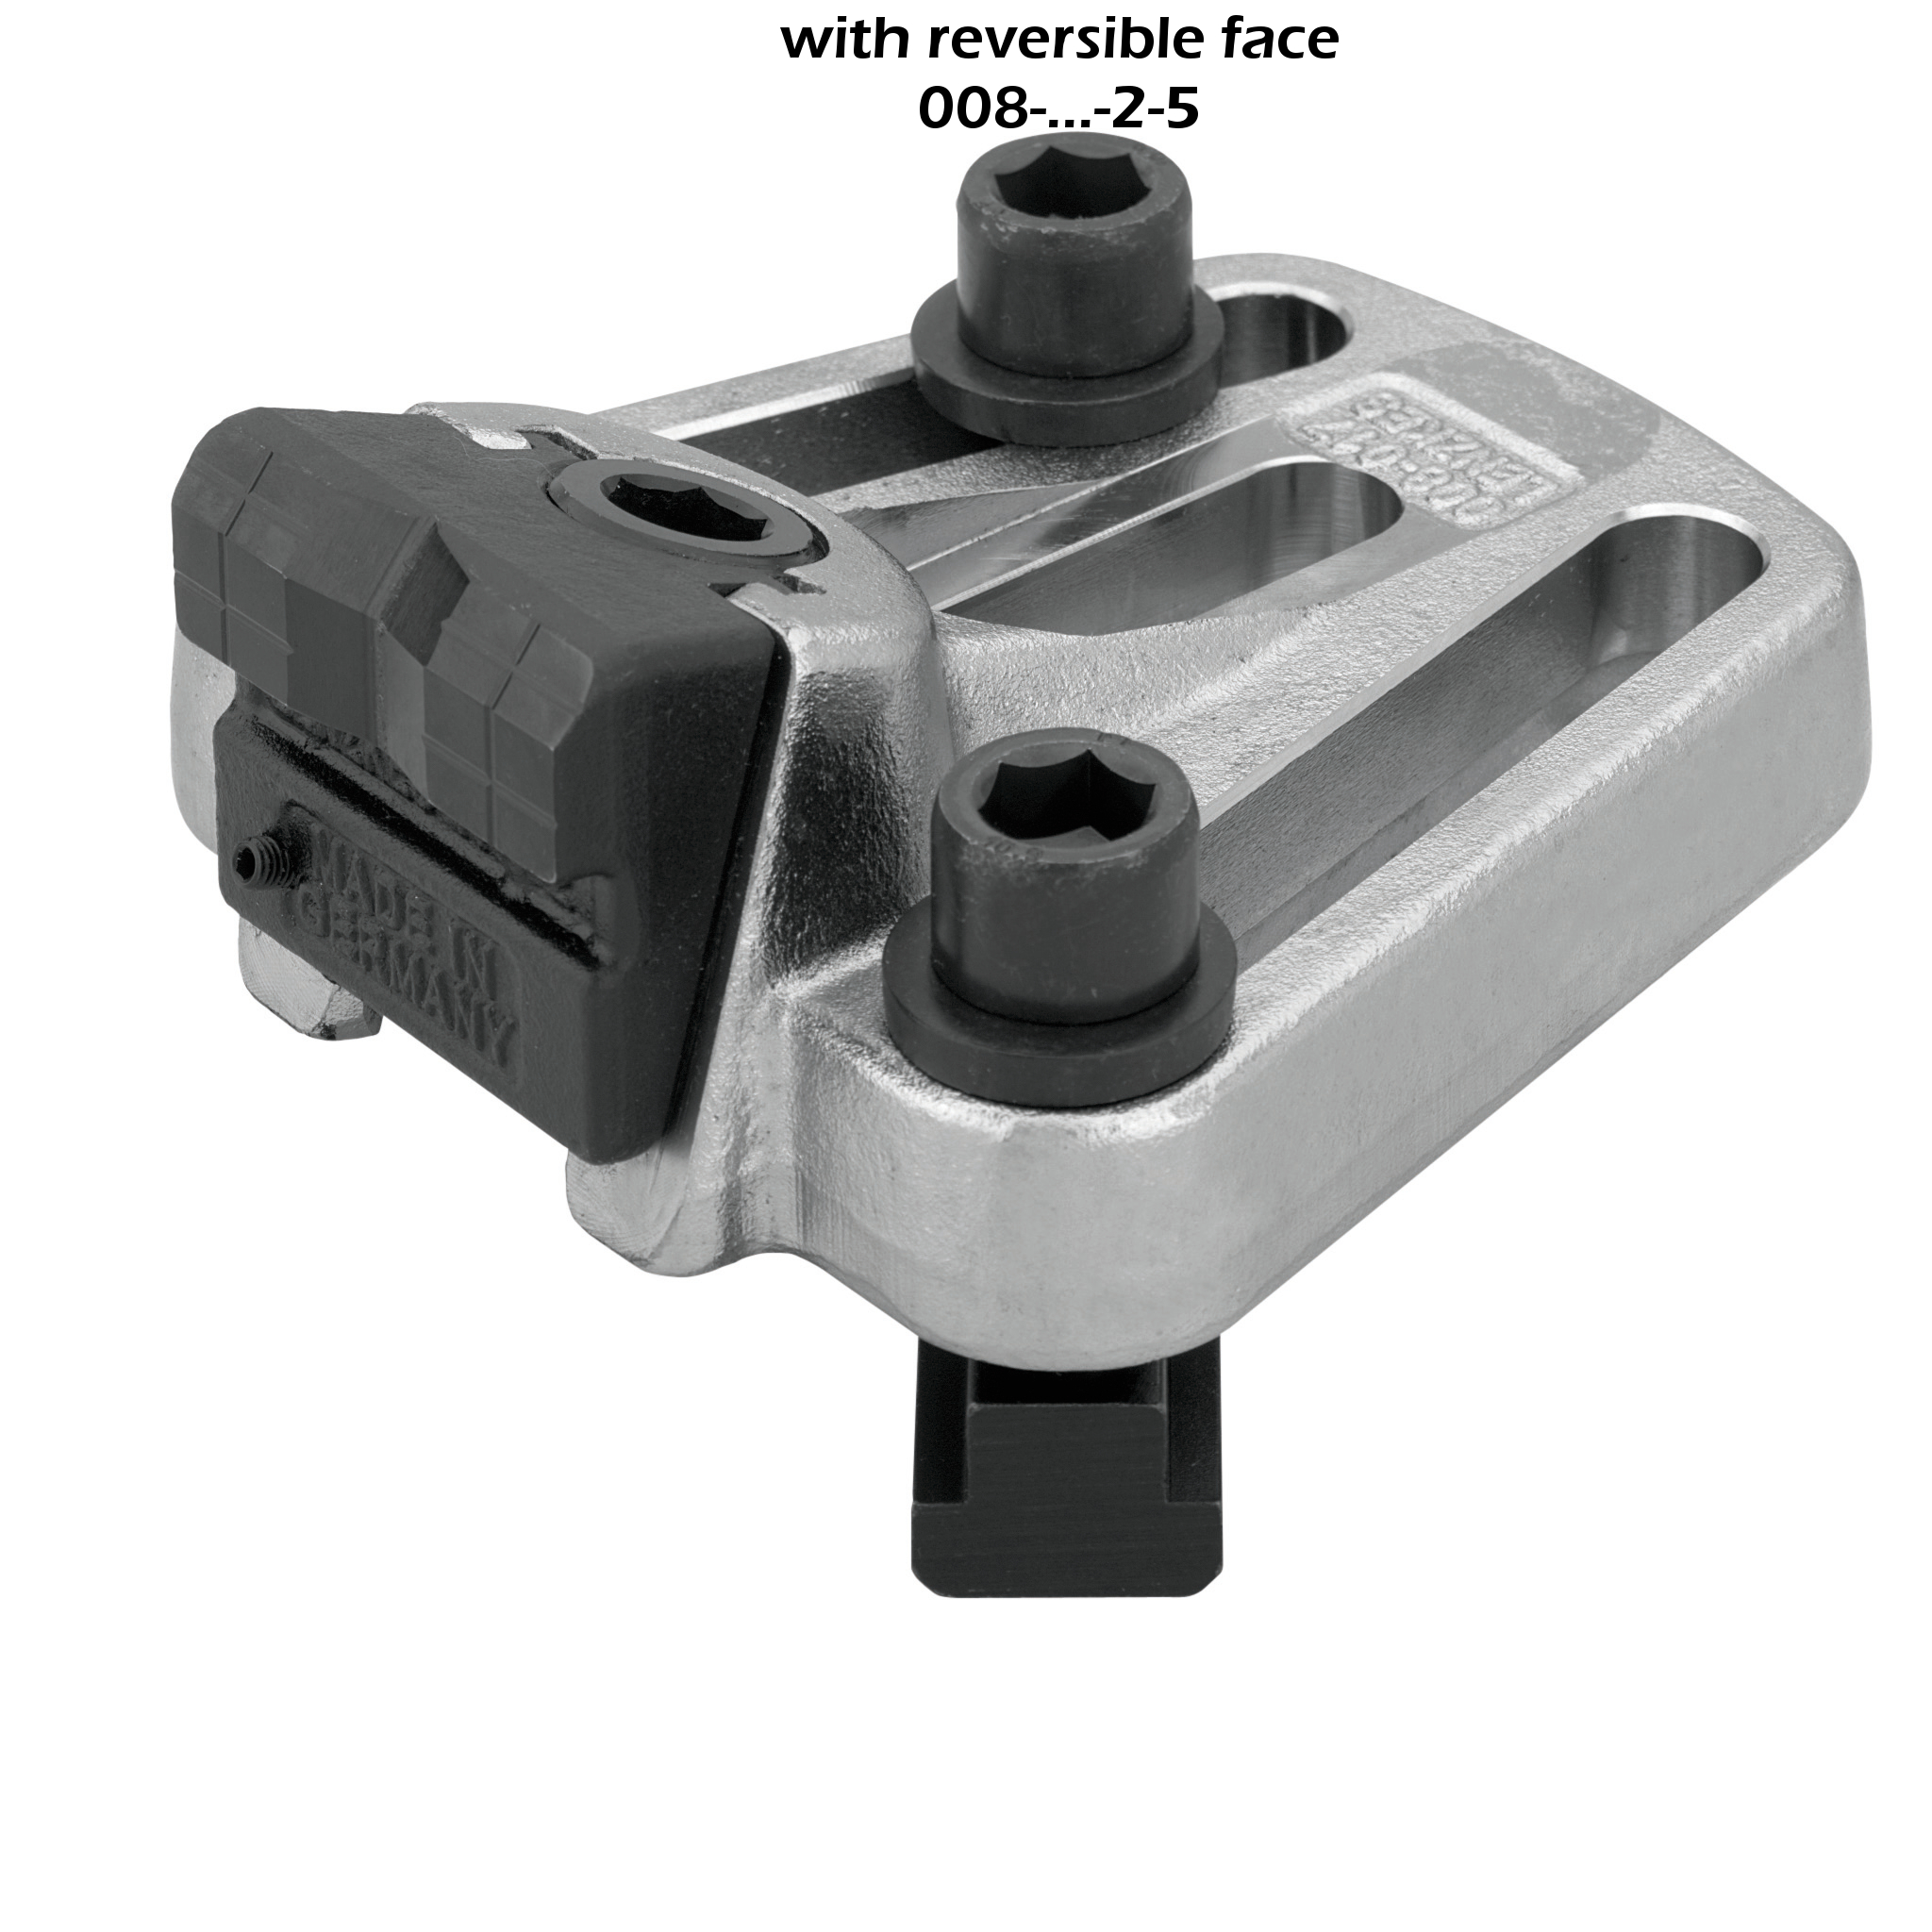 *** SIDE CLAMP SKQ10-2-5 ***